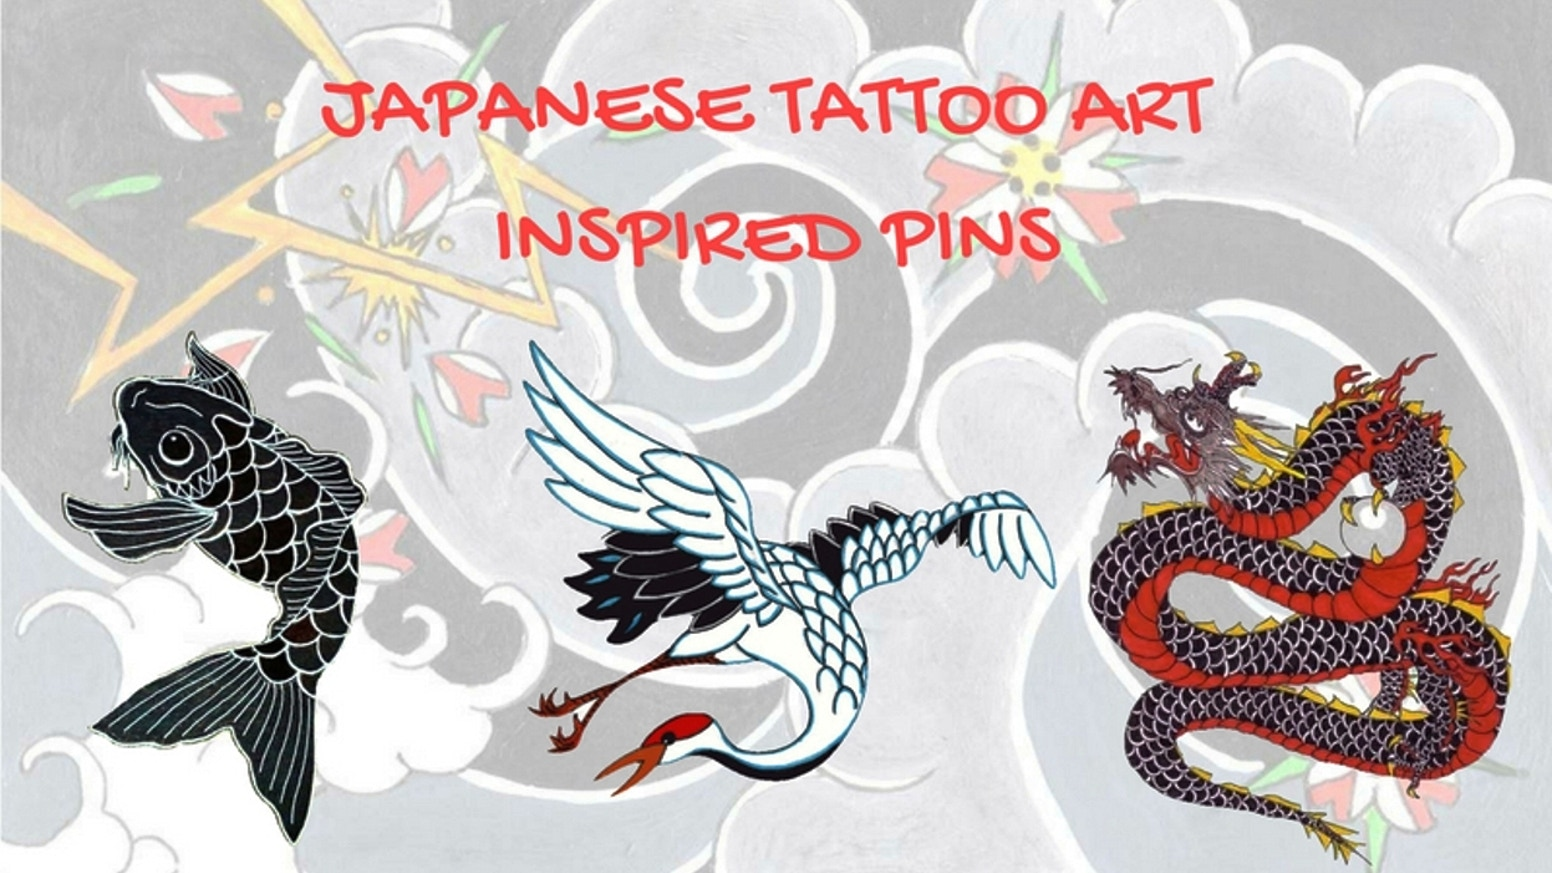 Japanese Tattoo Art Inspired Pins: Koi, Crane and Dragon by.